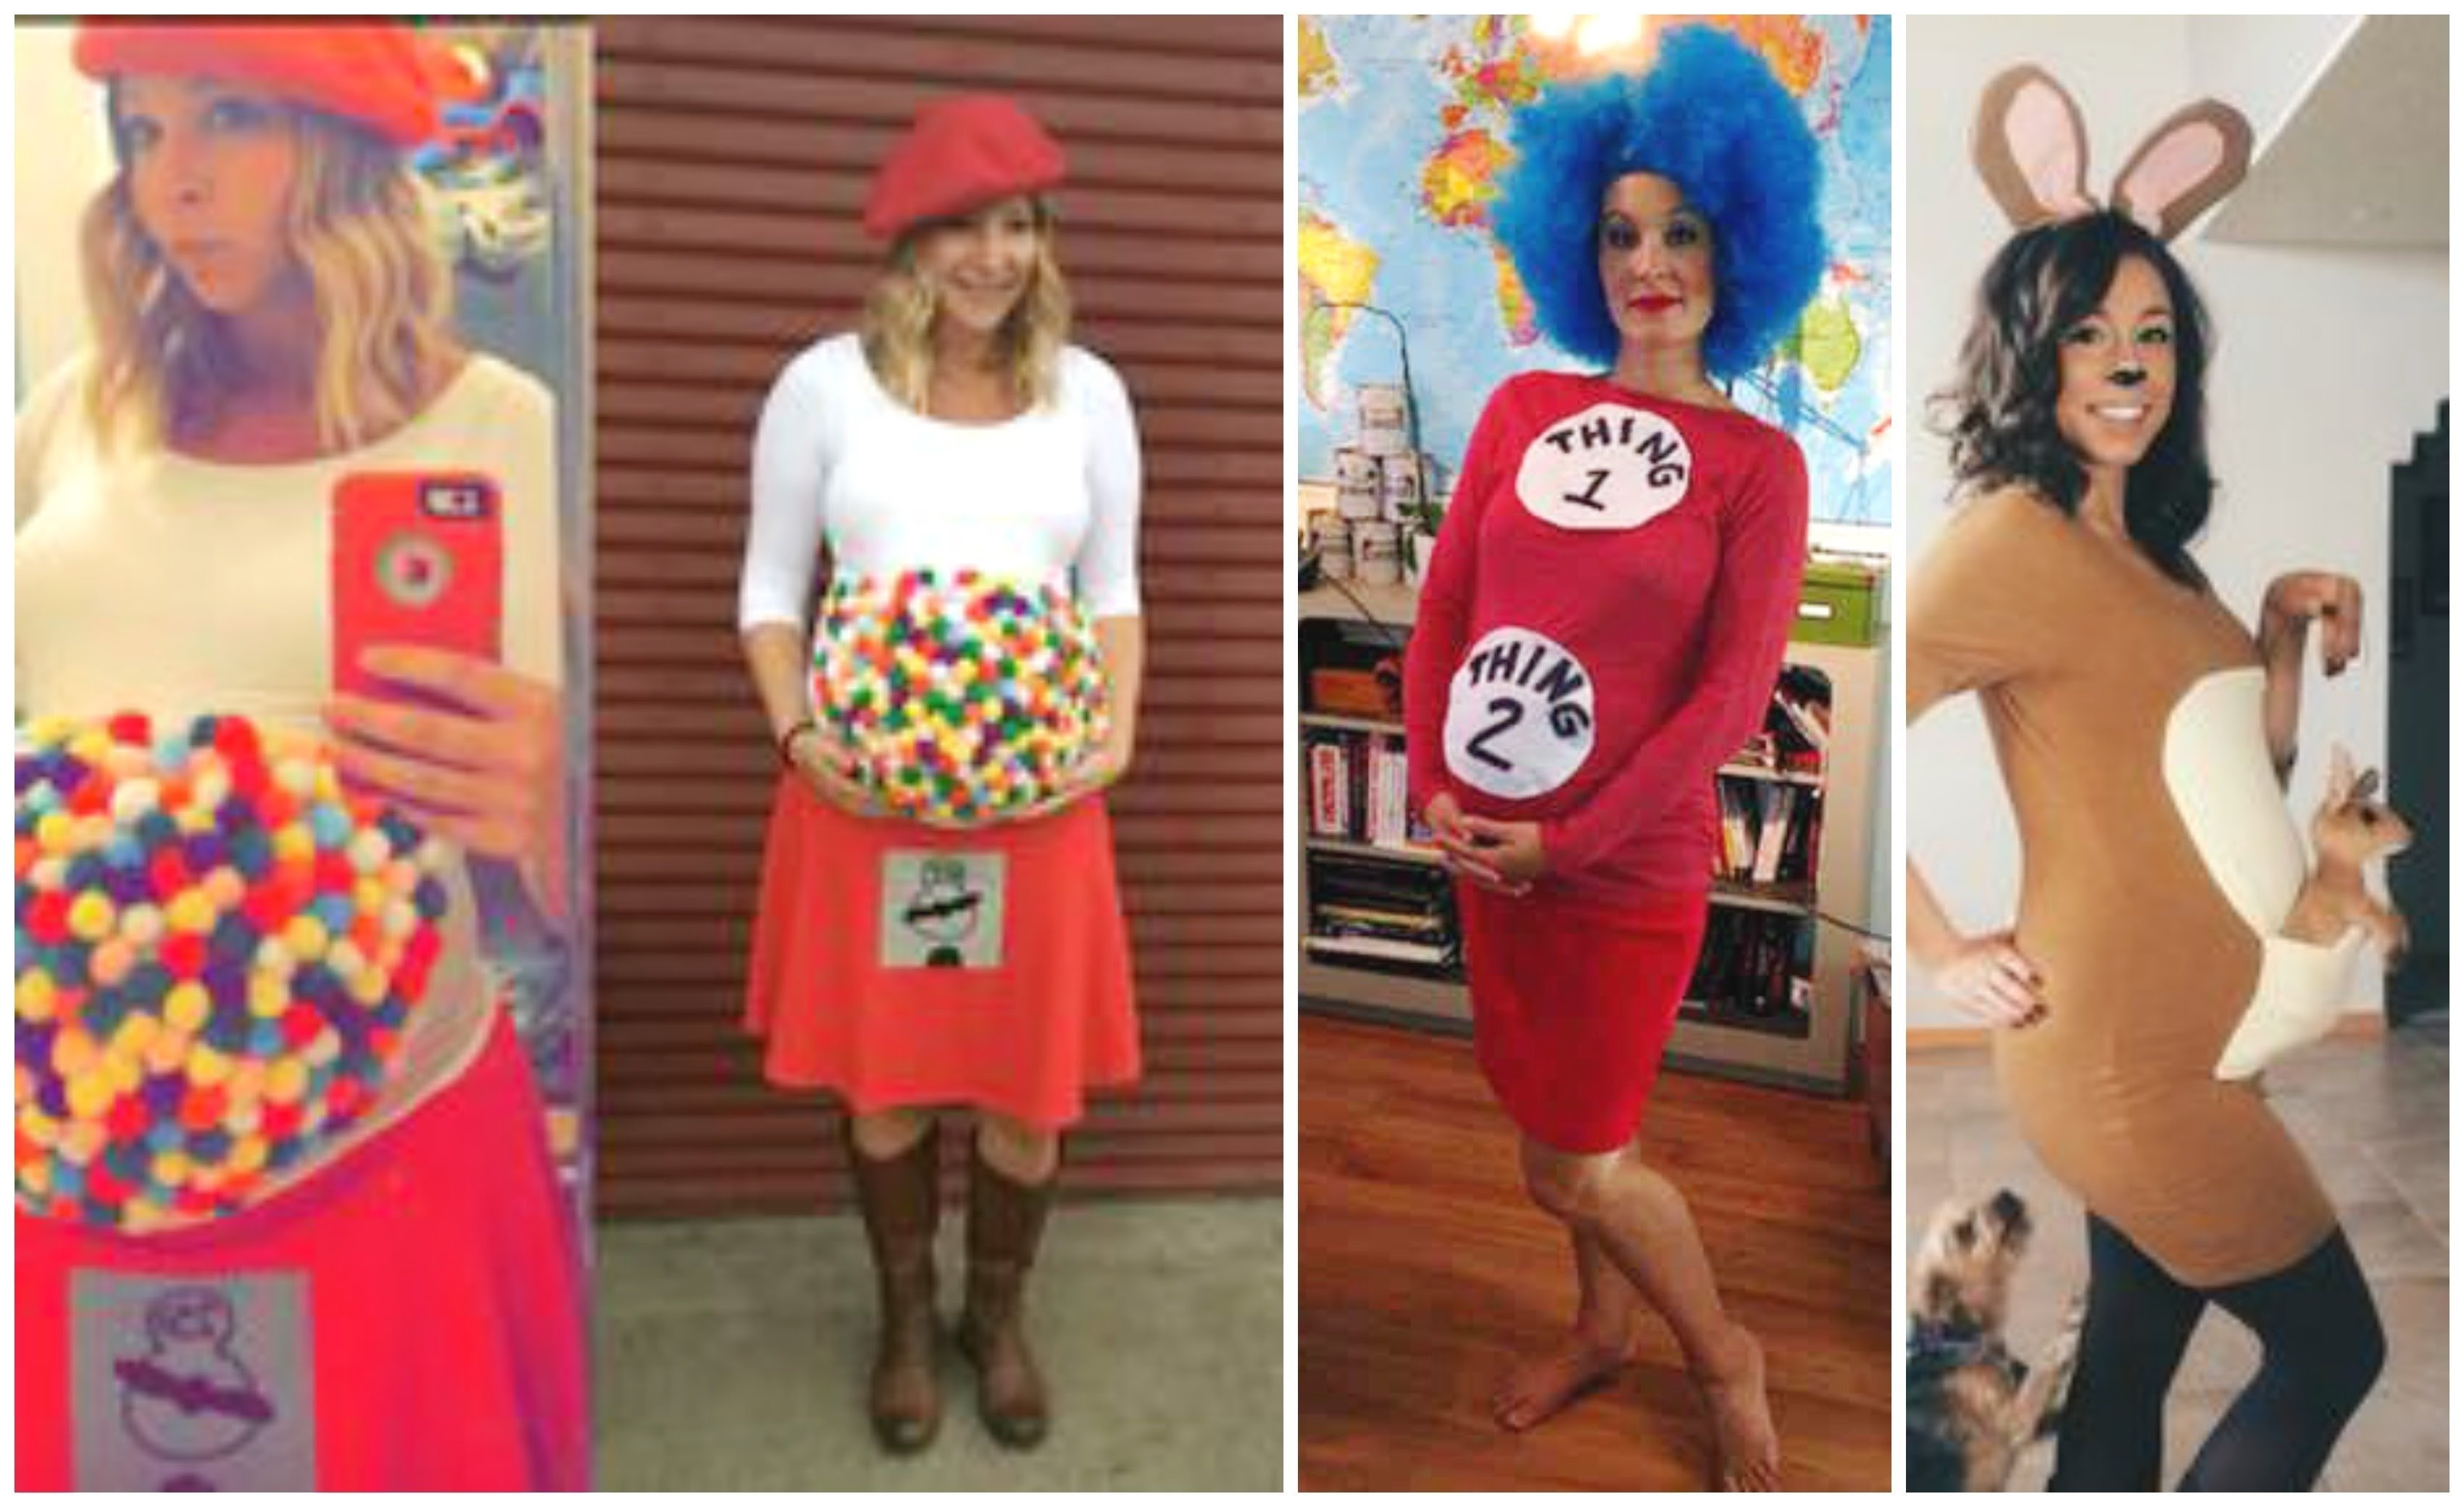 10 awesome creative halloween costume ideas women creative maternity halloween costume ideas costume ideas for 13